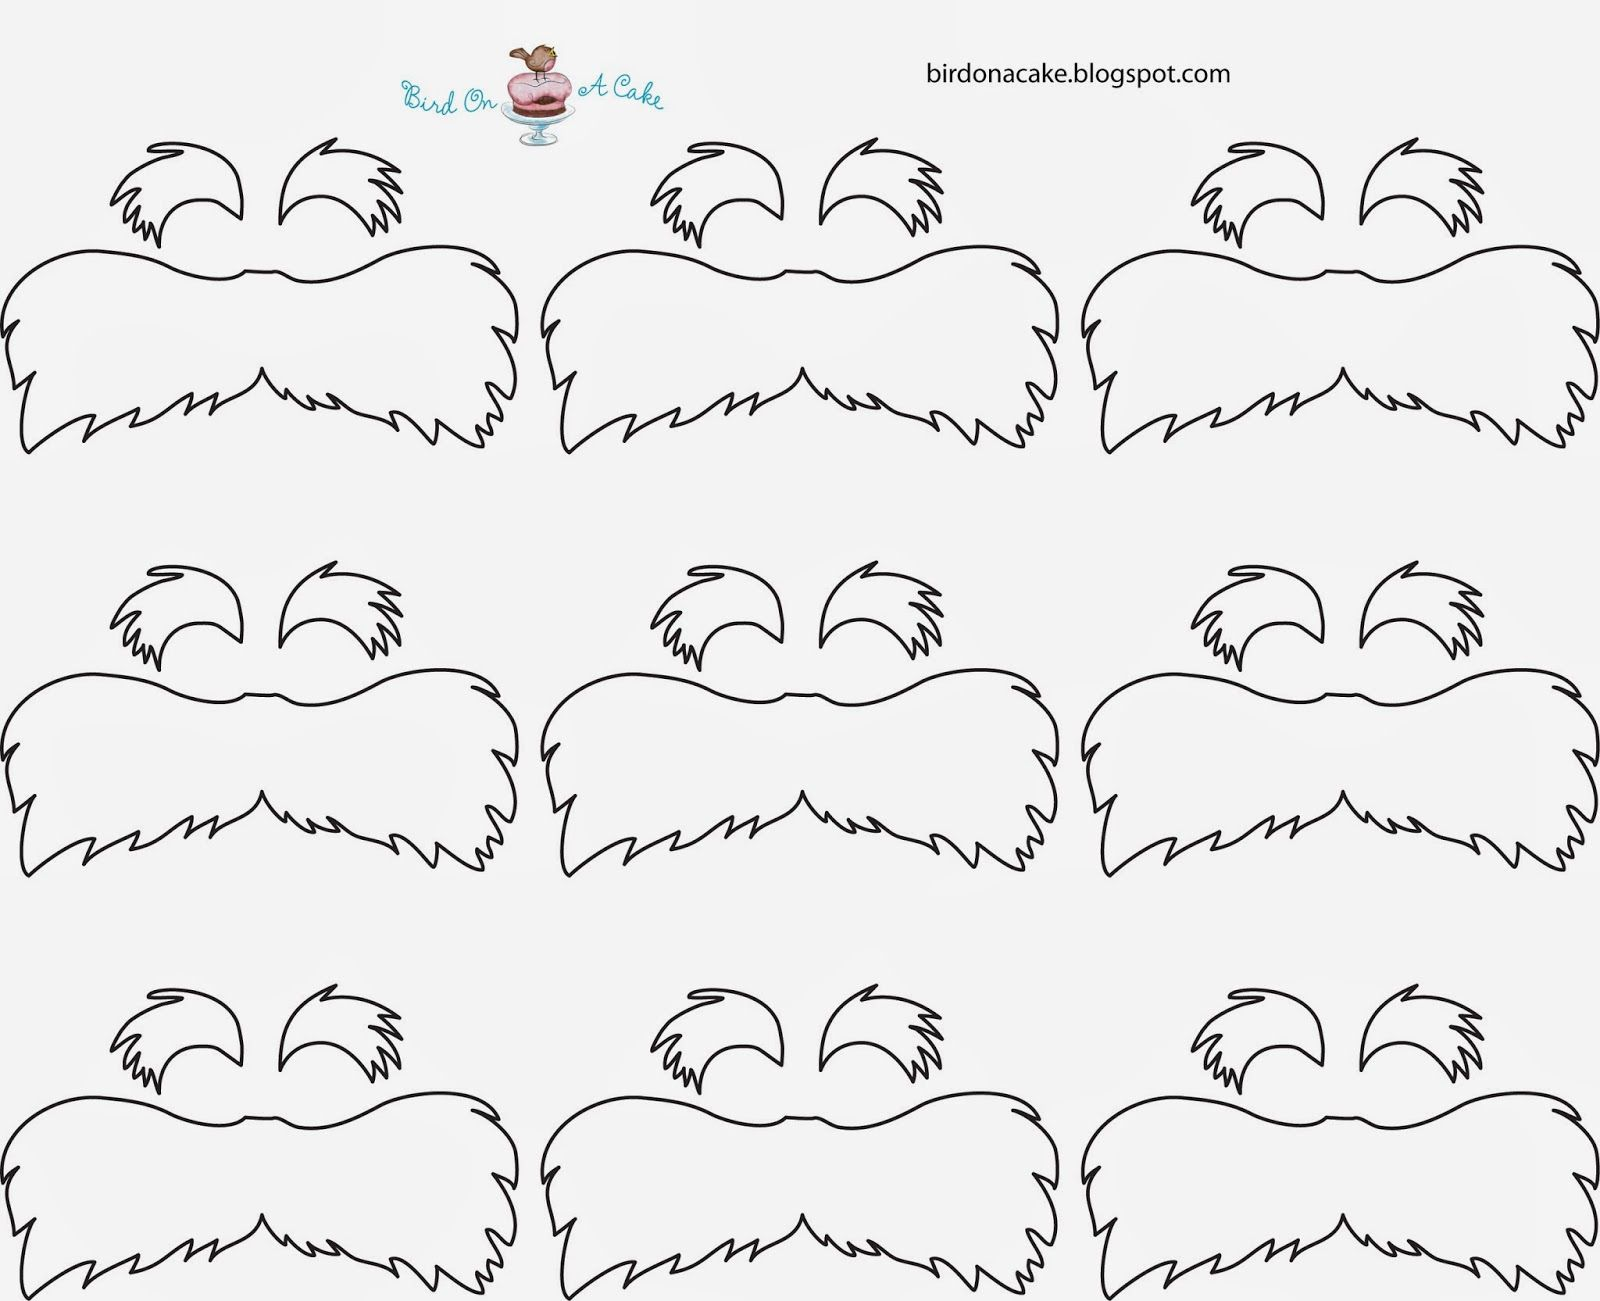 lorax mustache template straws | Next, melt the yellow candy melts